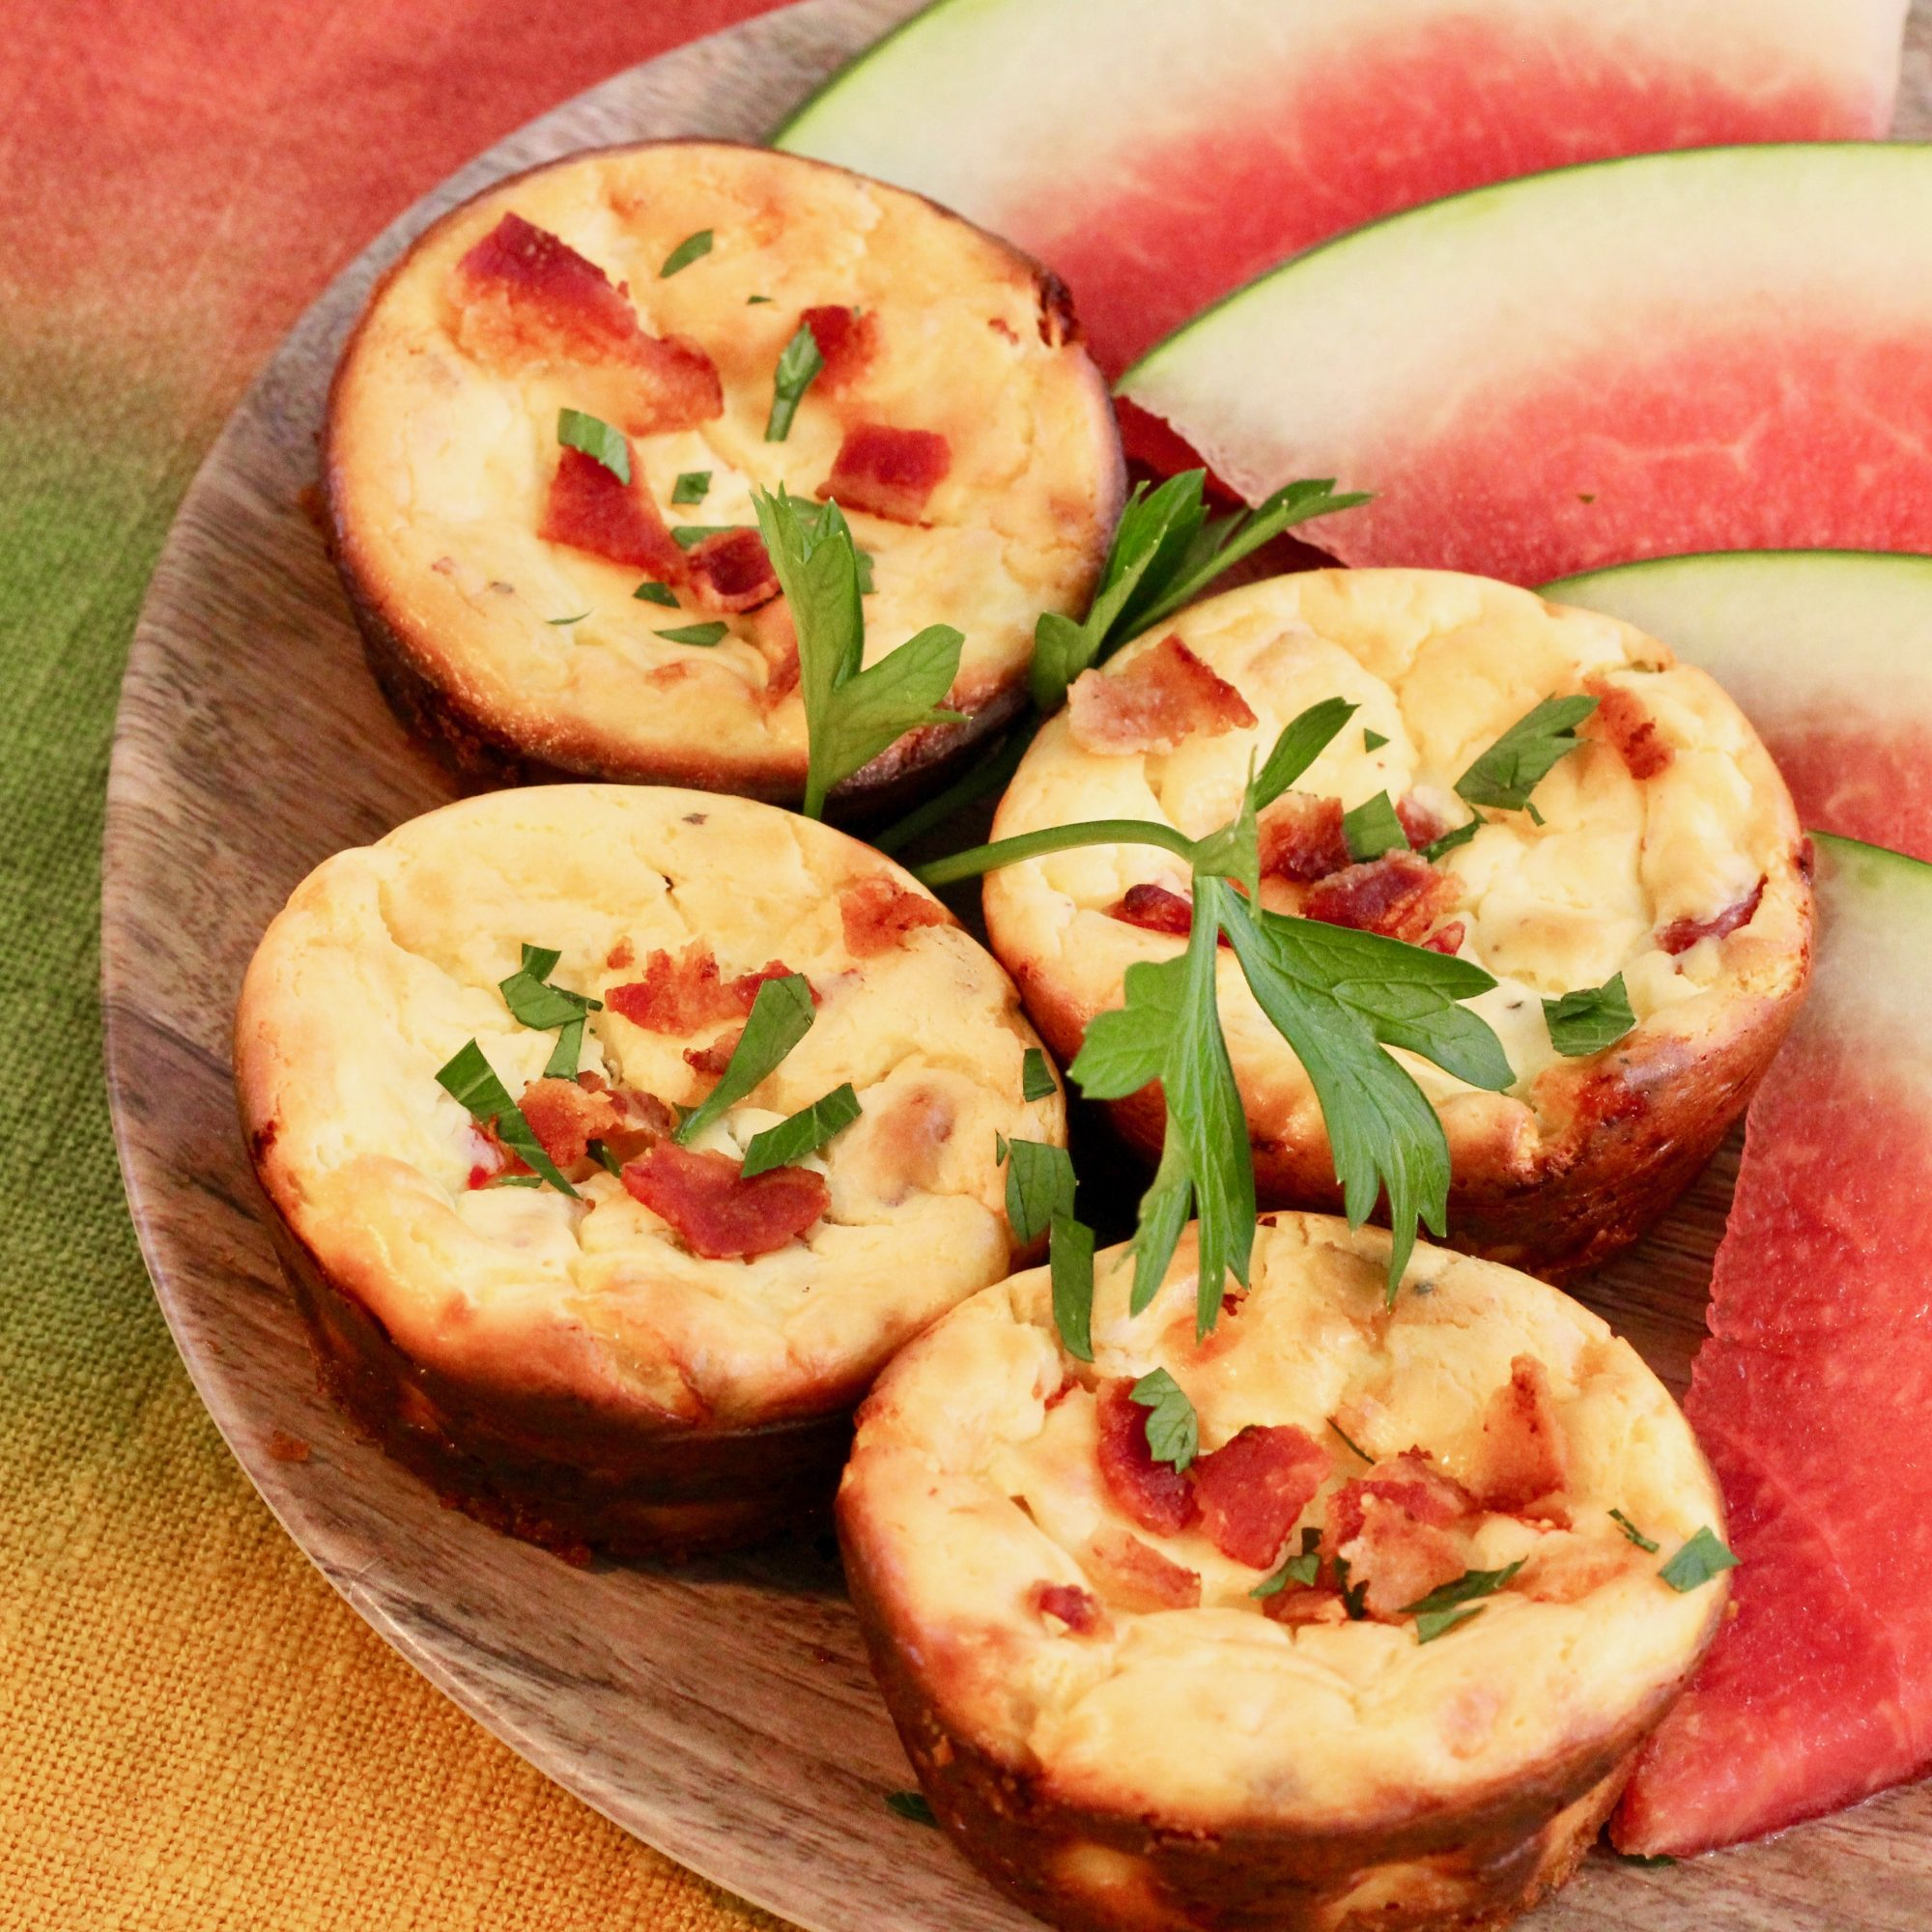 Savory Breakfast Mini Cheesecakes